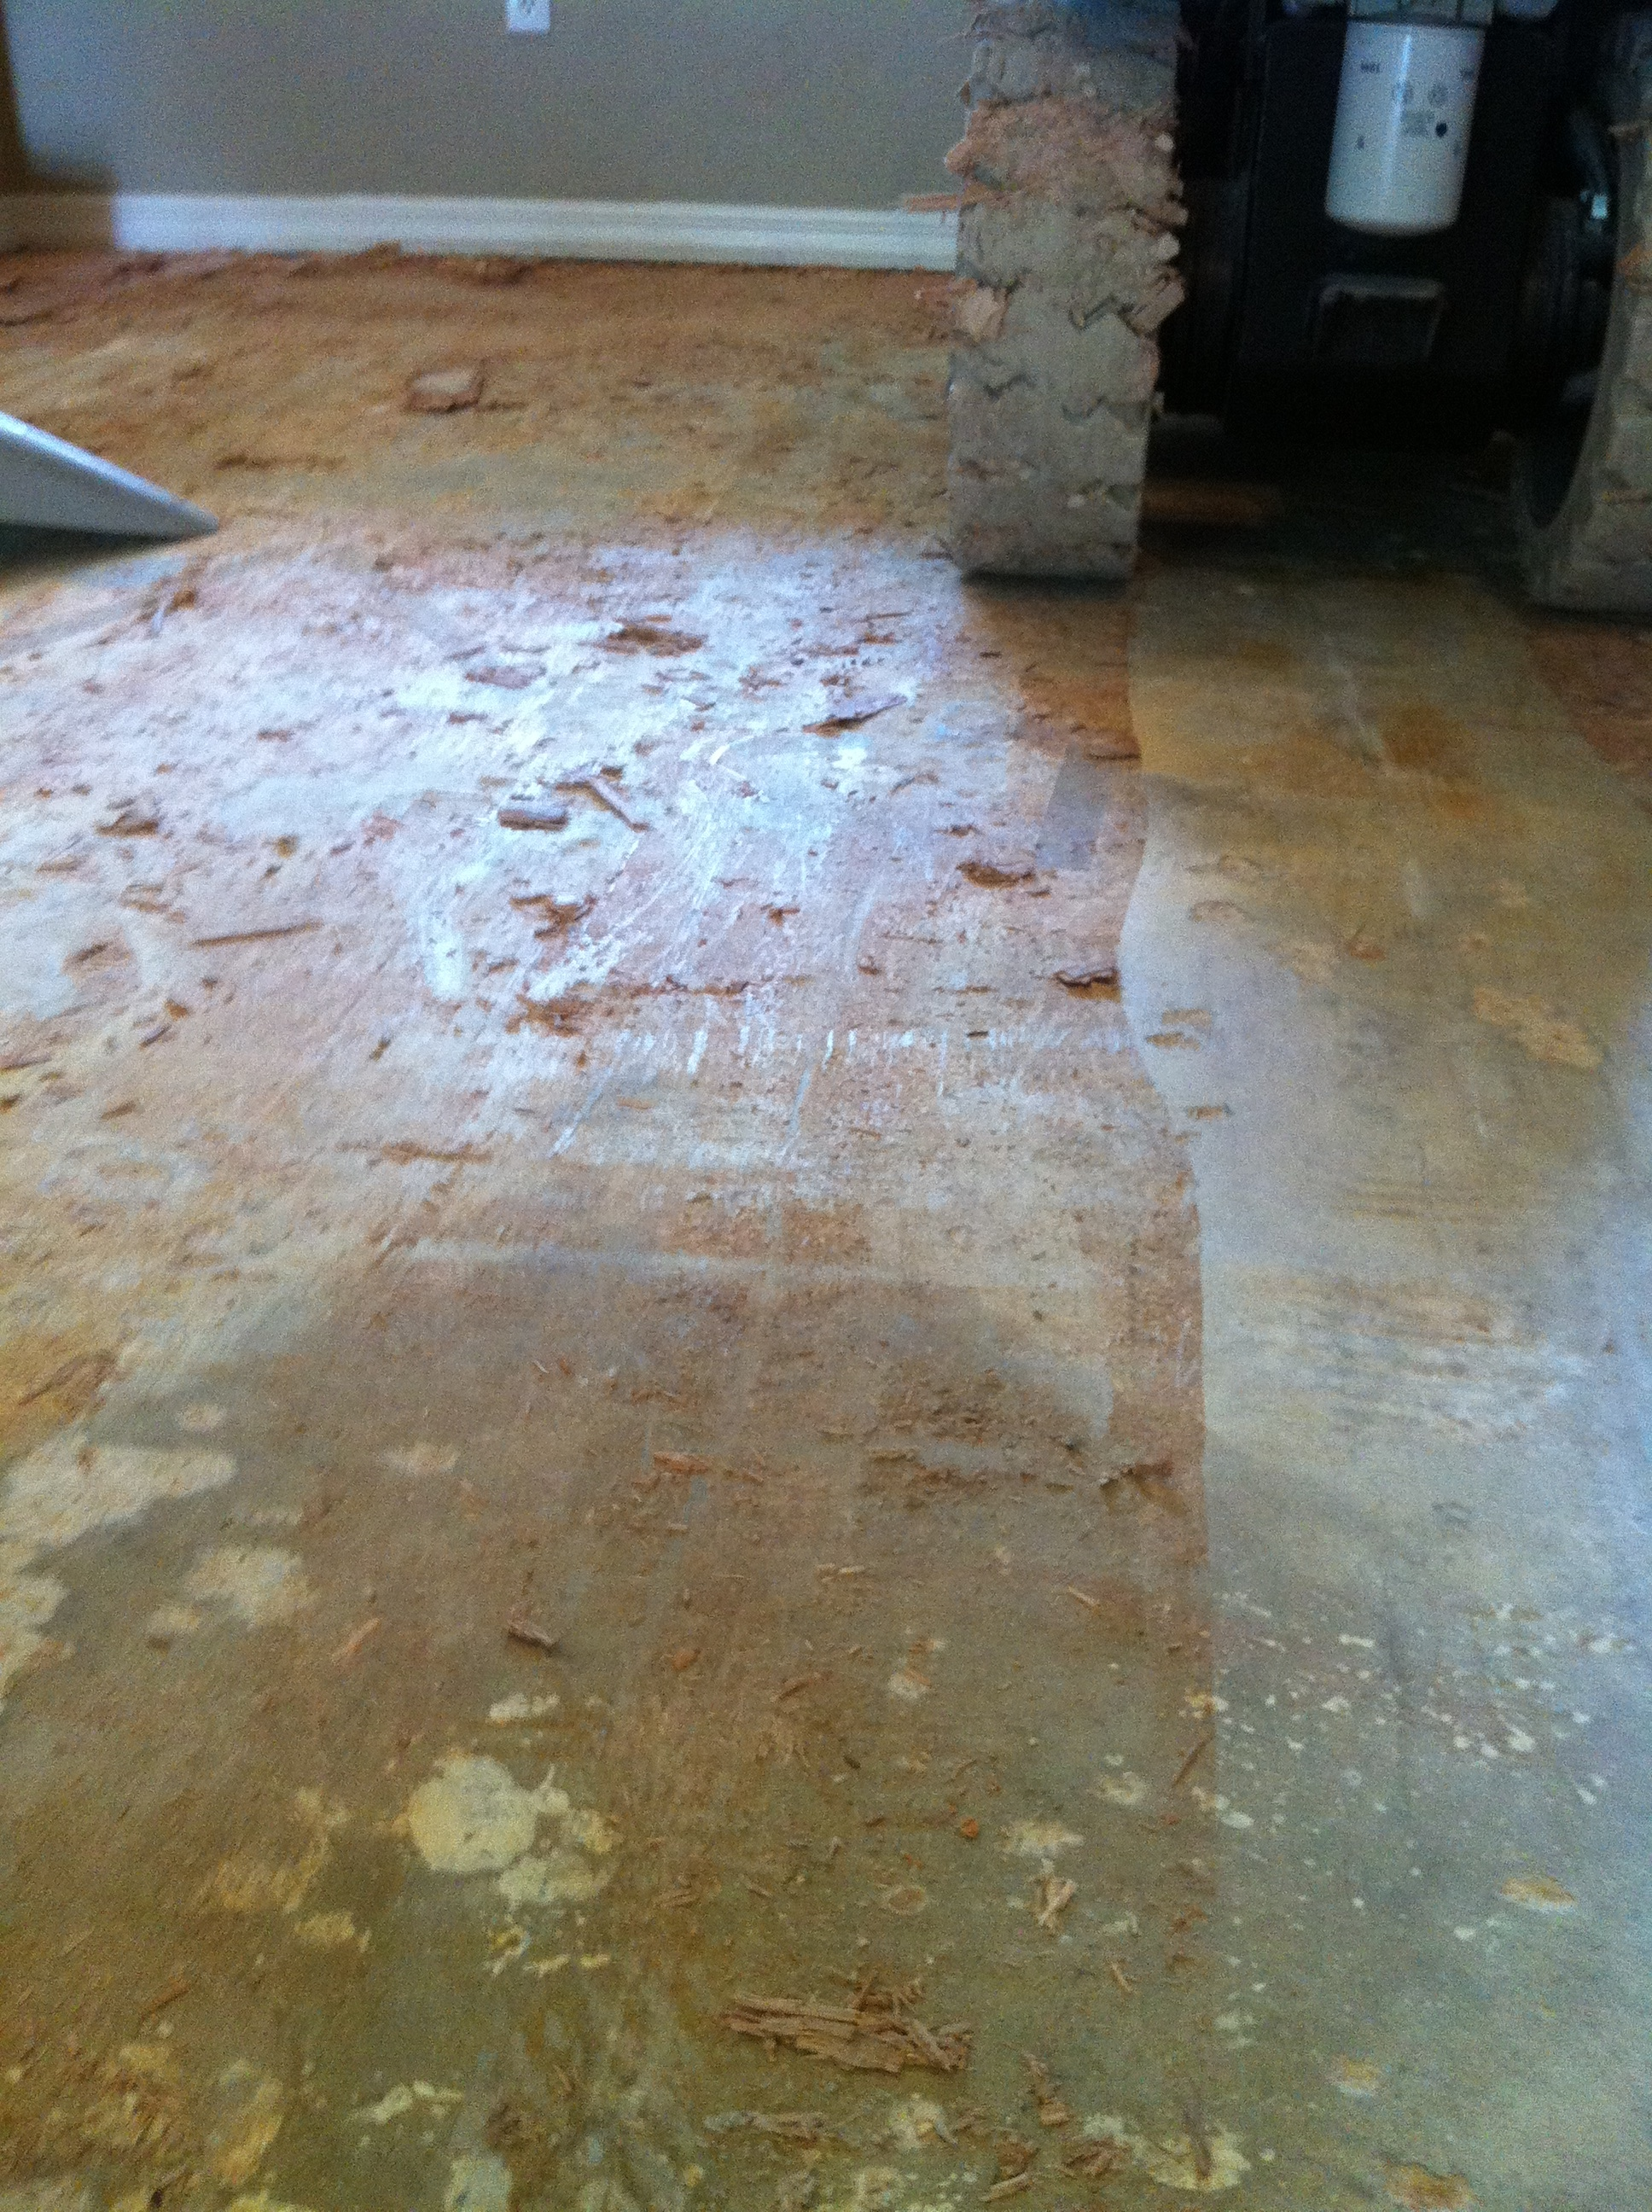 Image of wood floor glue removal revealing subfloor underneath